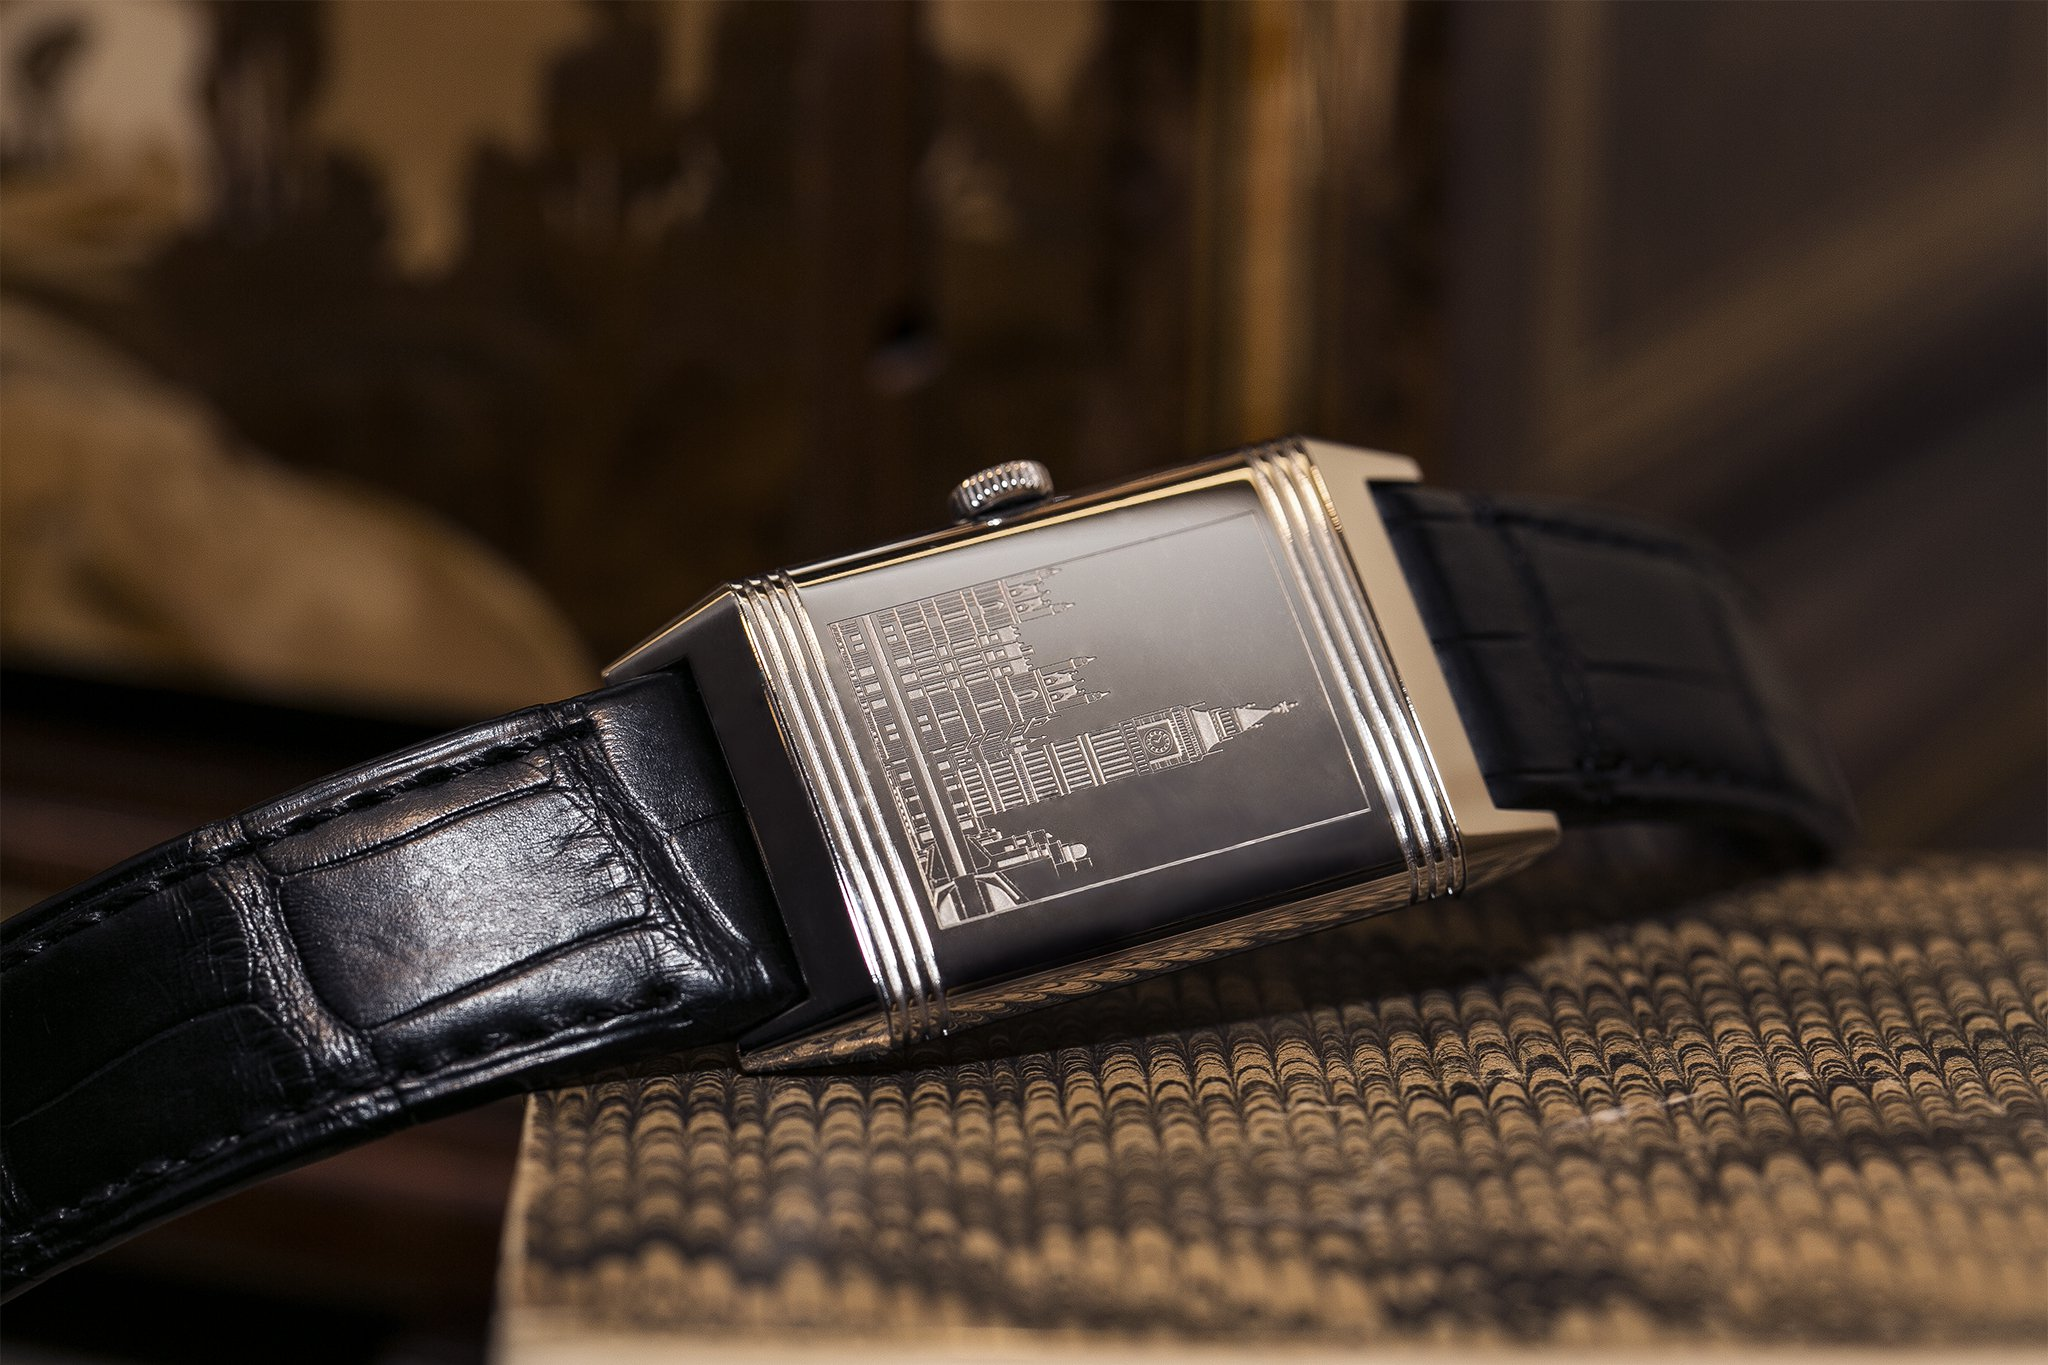 Jaeger-LeCoultre-Green-Grande-Reverso-Ultra-Thin-1931-Watch-For-London-Big-Ben.jpg